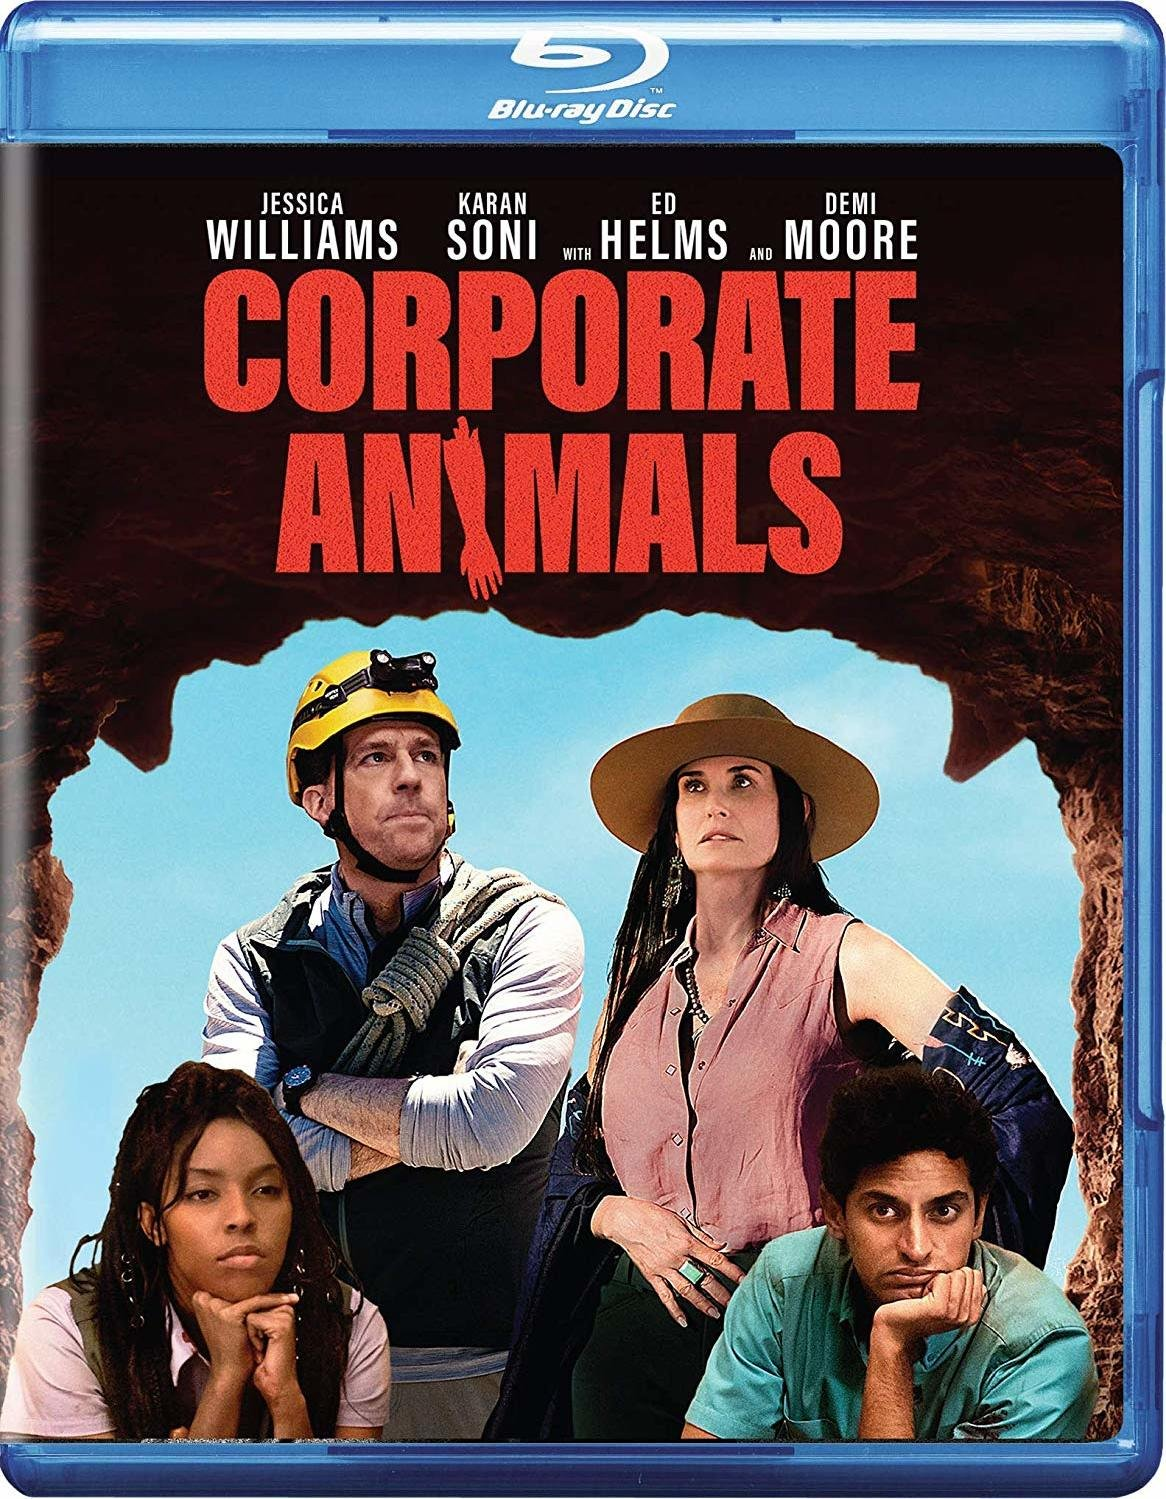 Corporate Animals (2019) poster image